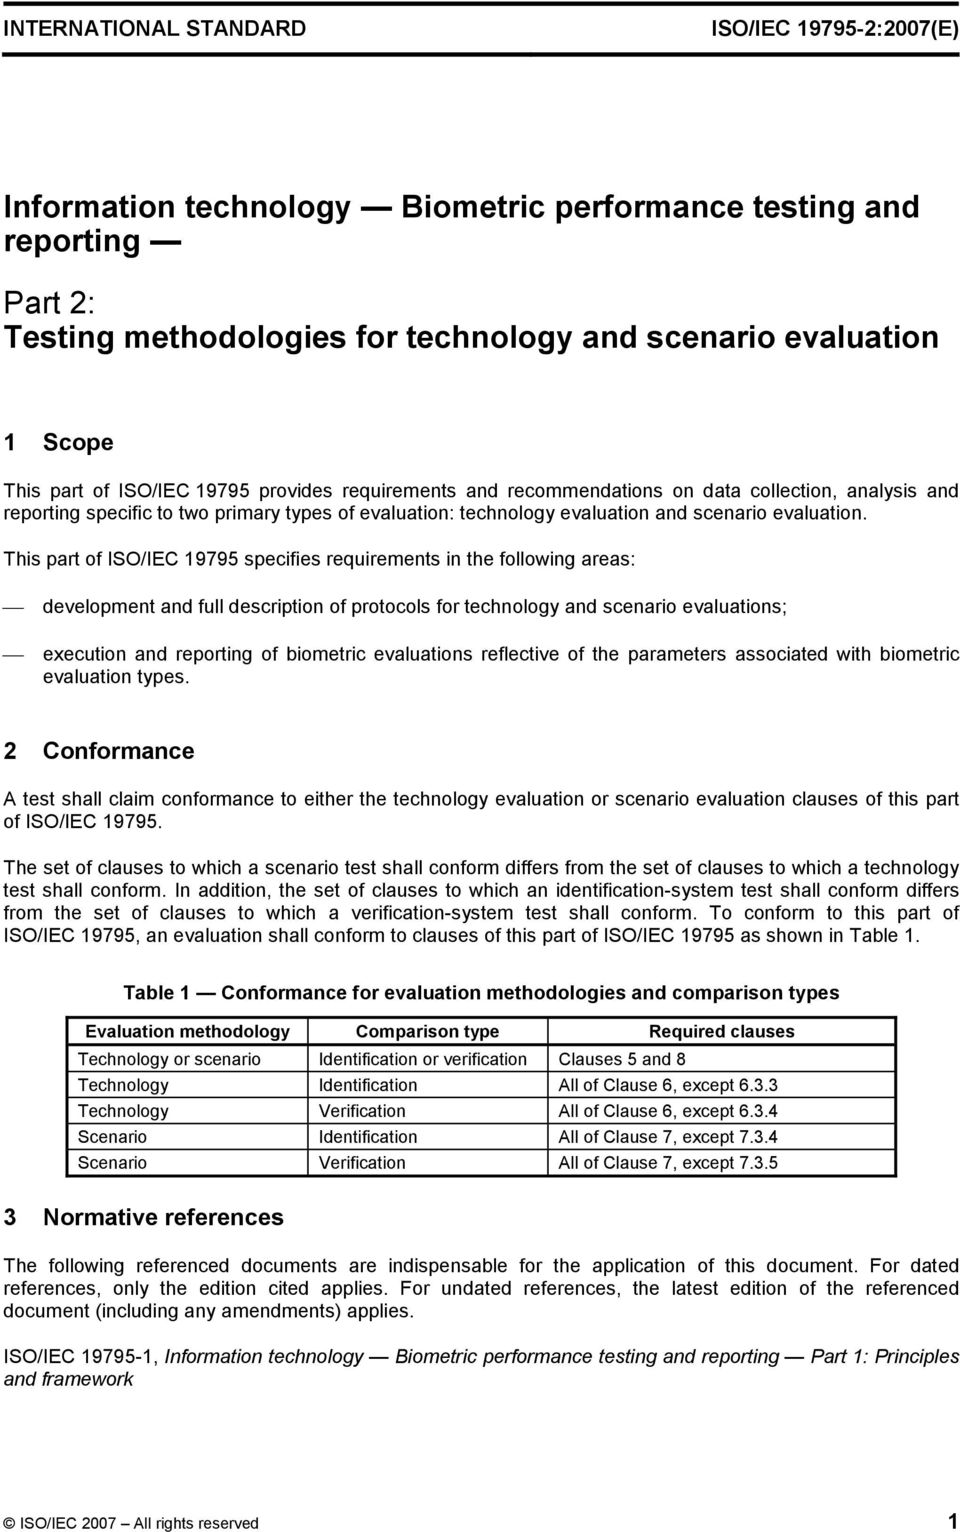 This part of ISO/IEC 19795 specifies requirements in the following areas: development and full description of protocols for technology and scenario evaluations; execution and reporting of biometric